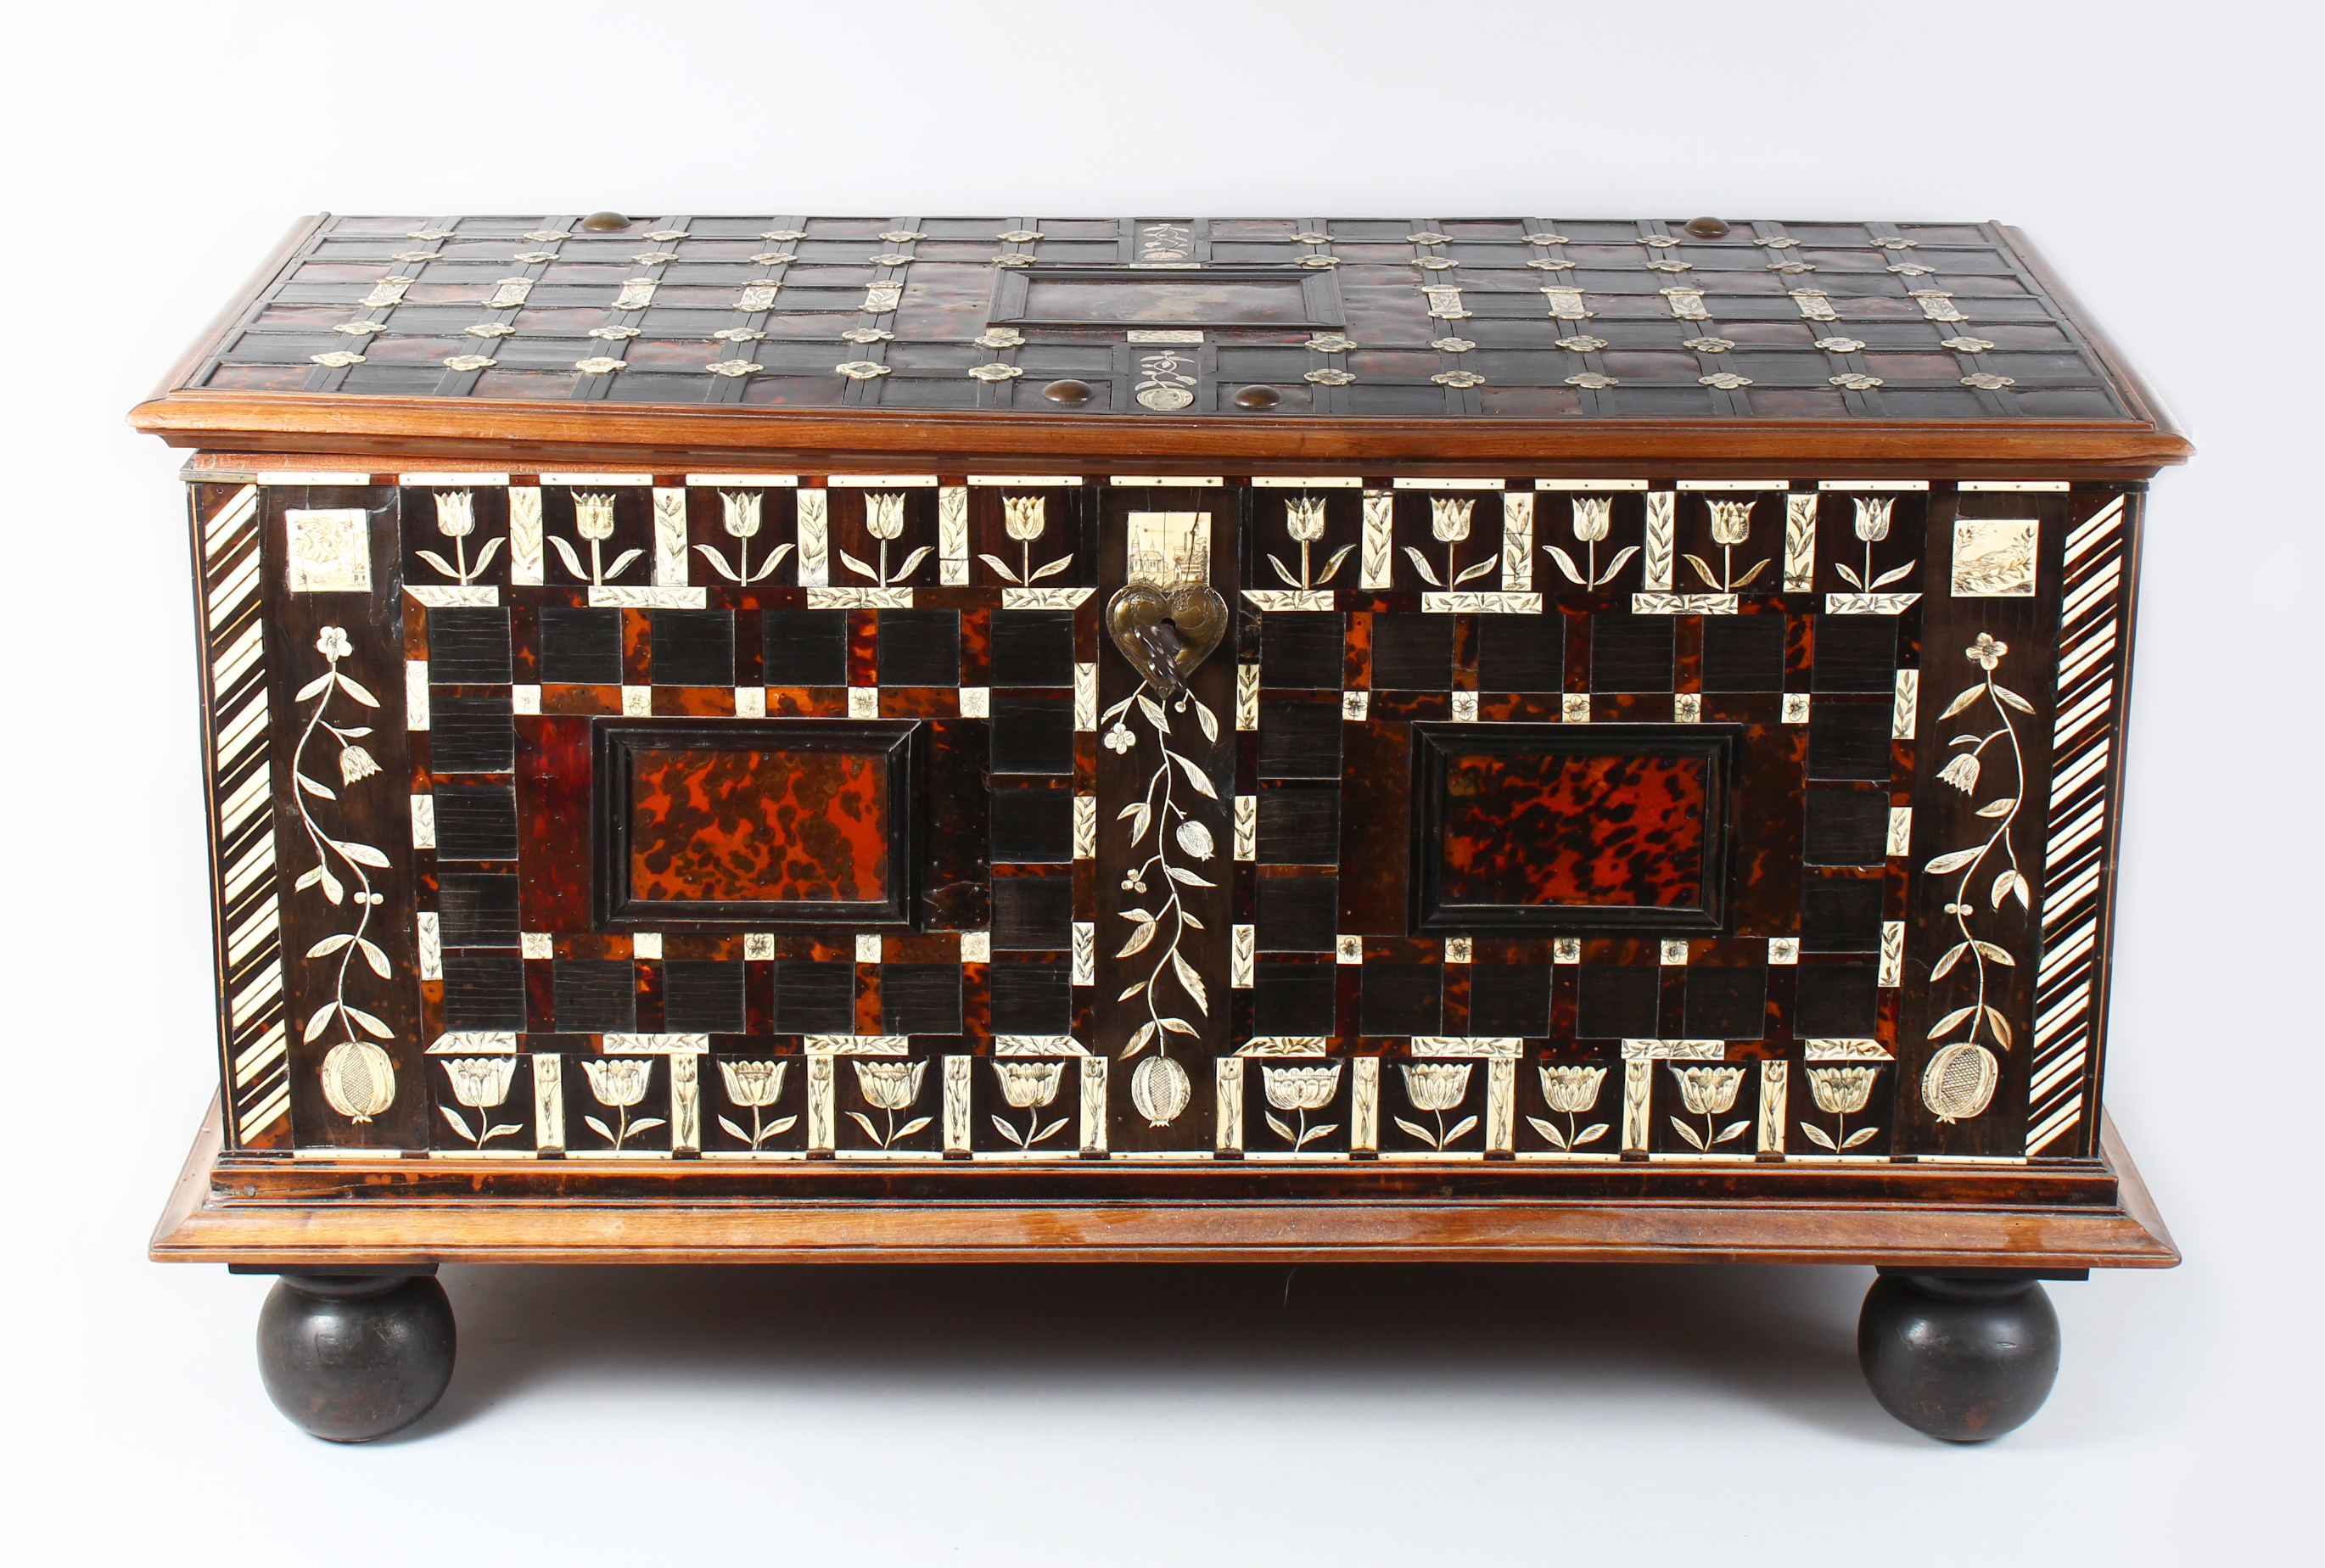 A superb 18th century Indo Portuguese or Dutch Colonial ivory and tortoiseshell inlaid chest